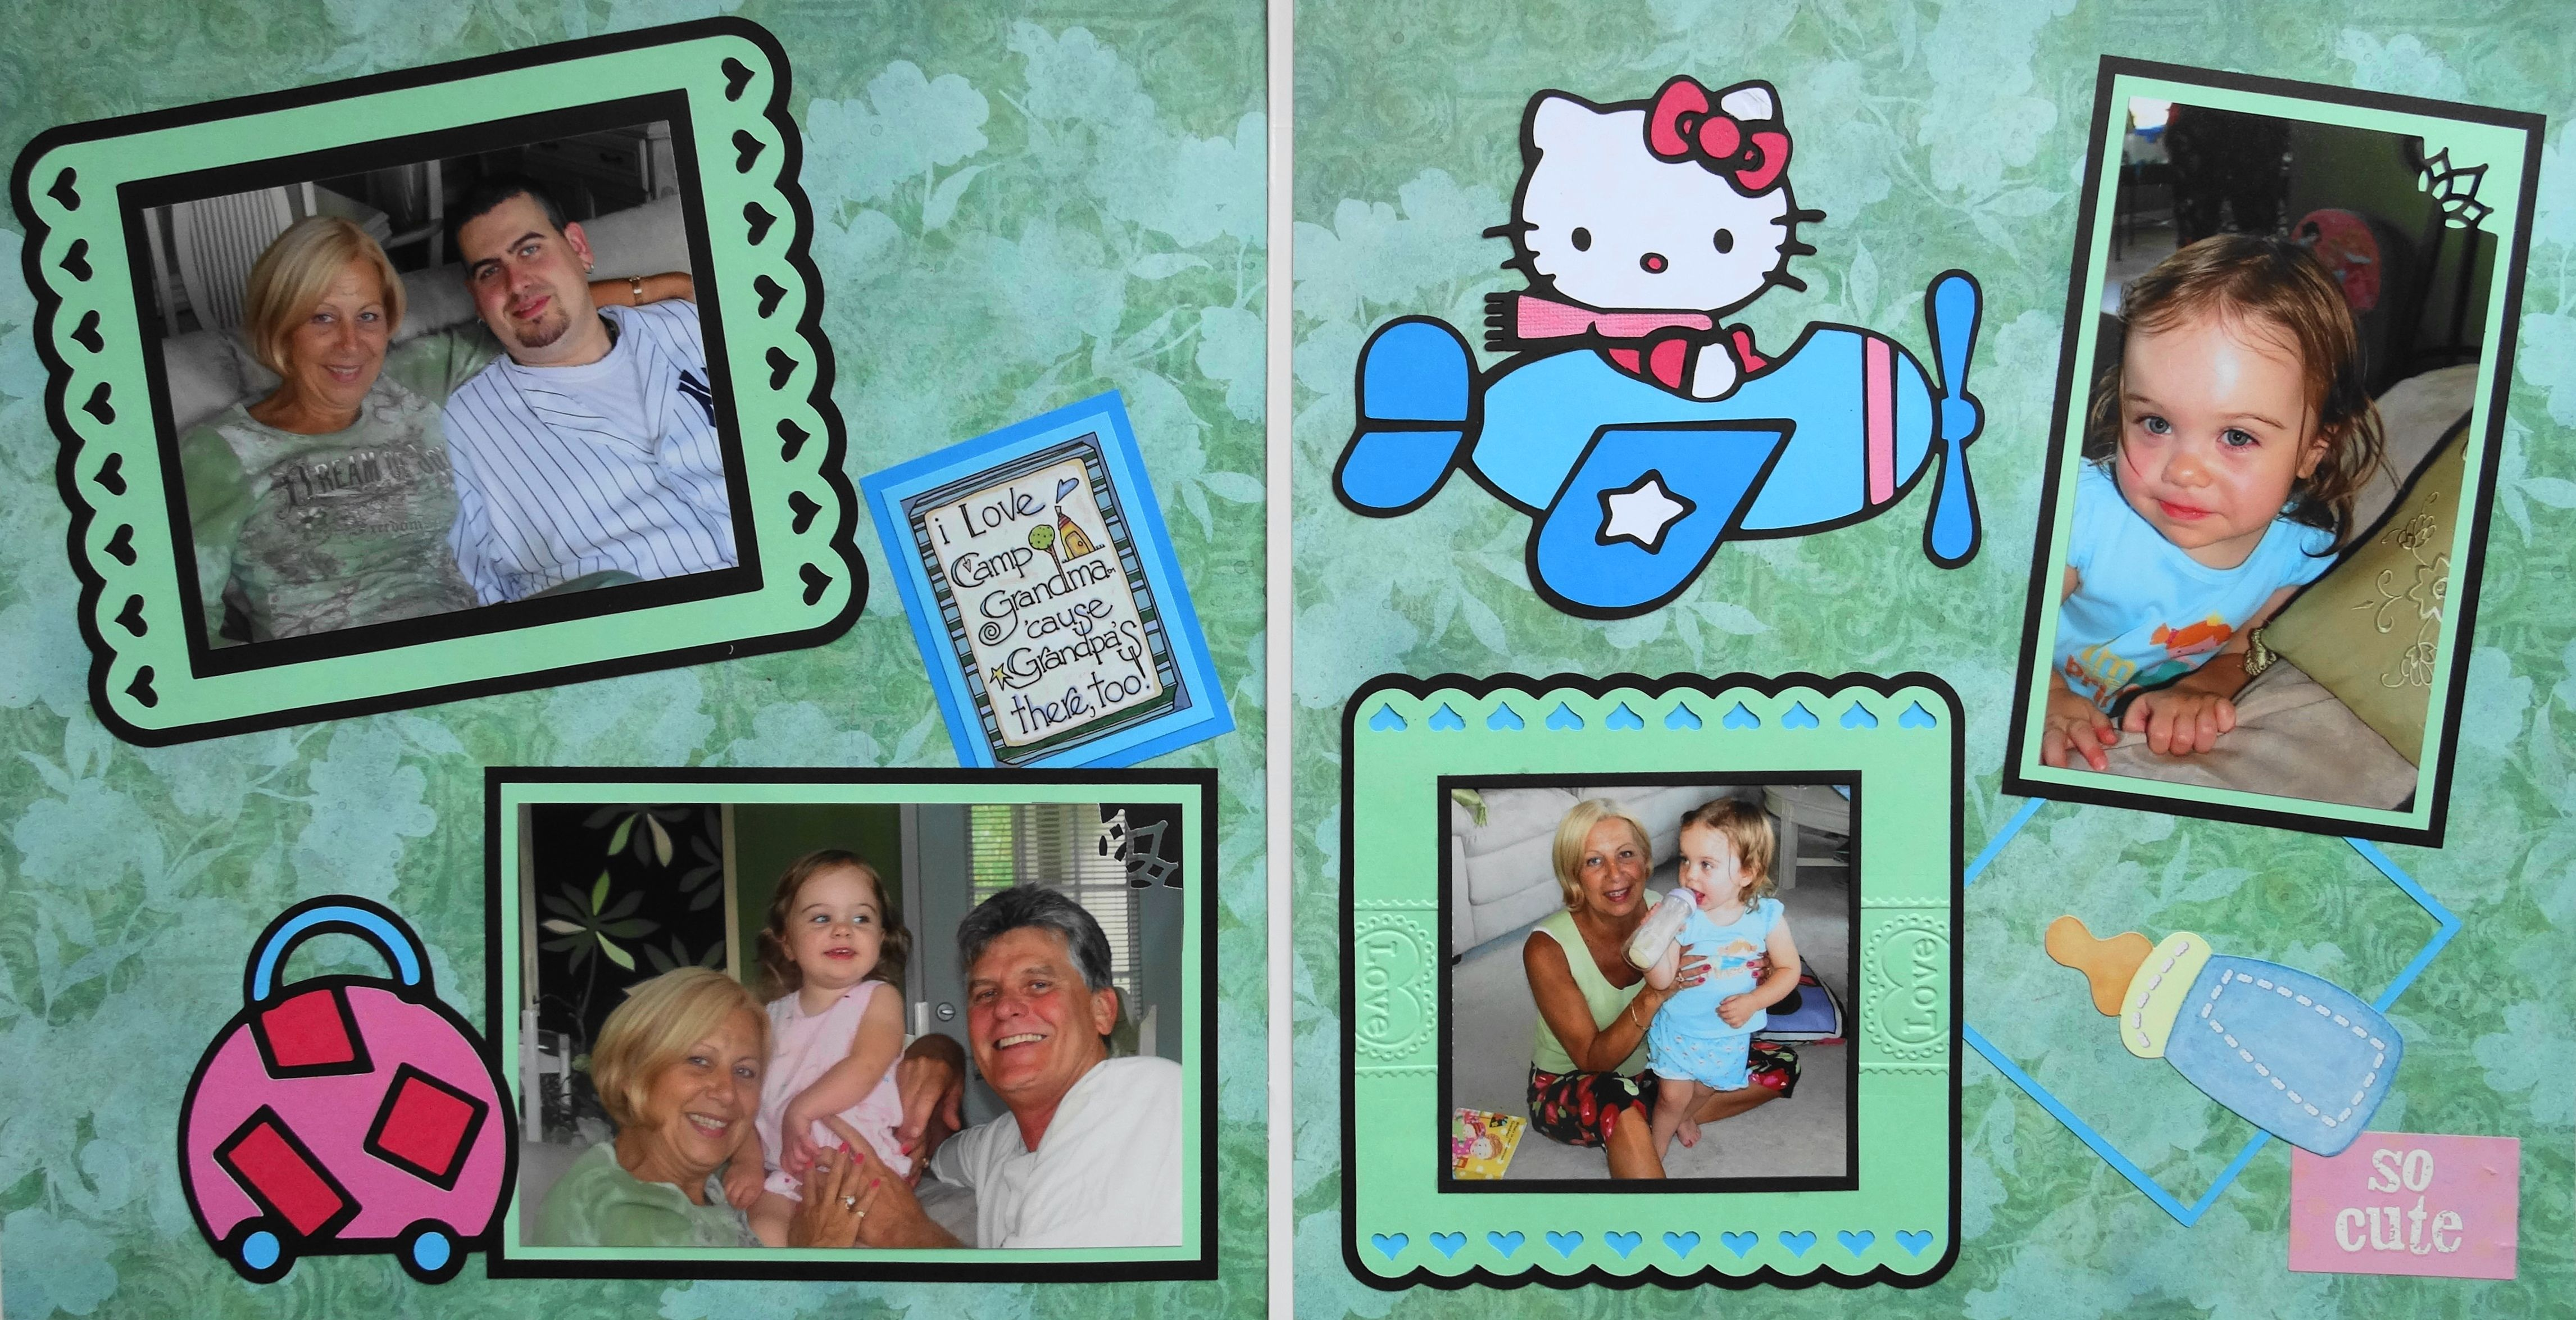 Scrapbook ideas hello kitty - Green Scrapbook Page Coming To Visit Nana Gamp 2 Page Child Layout With Hello Kitty In An Airplane And A Suitcase From Everyday Life Album 11